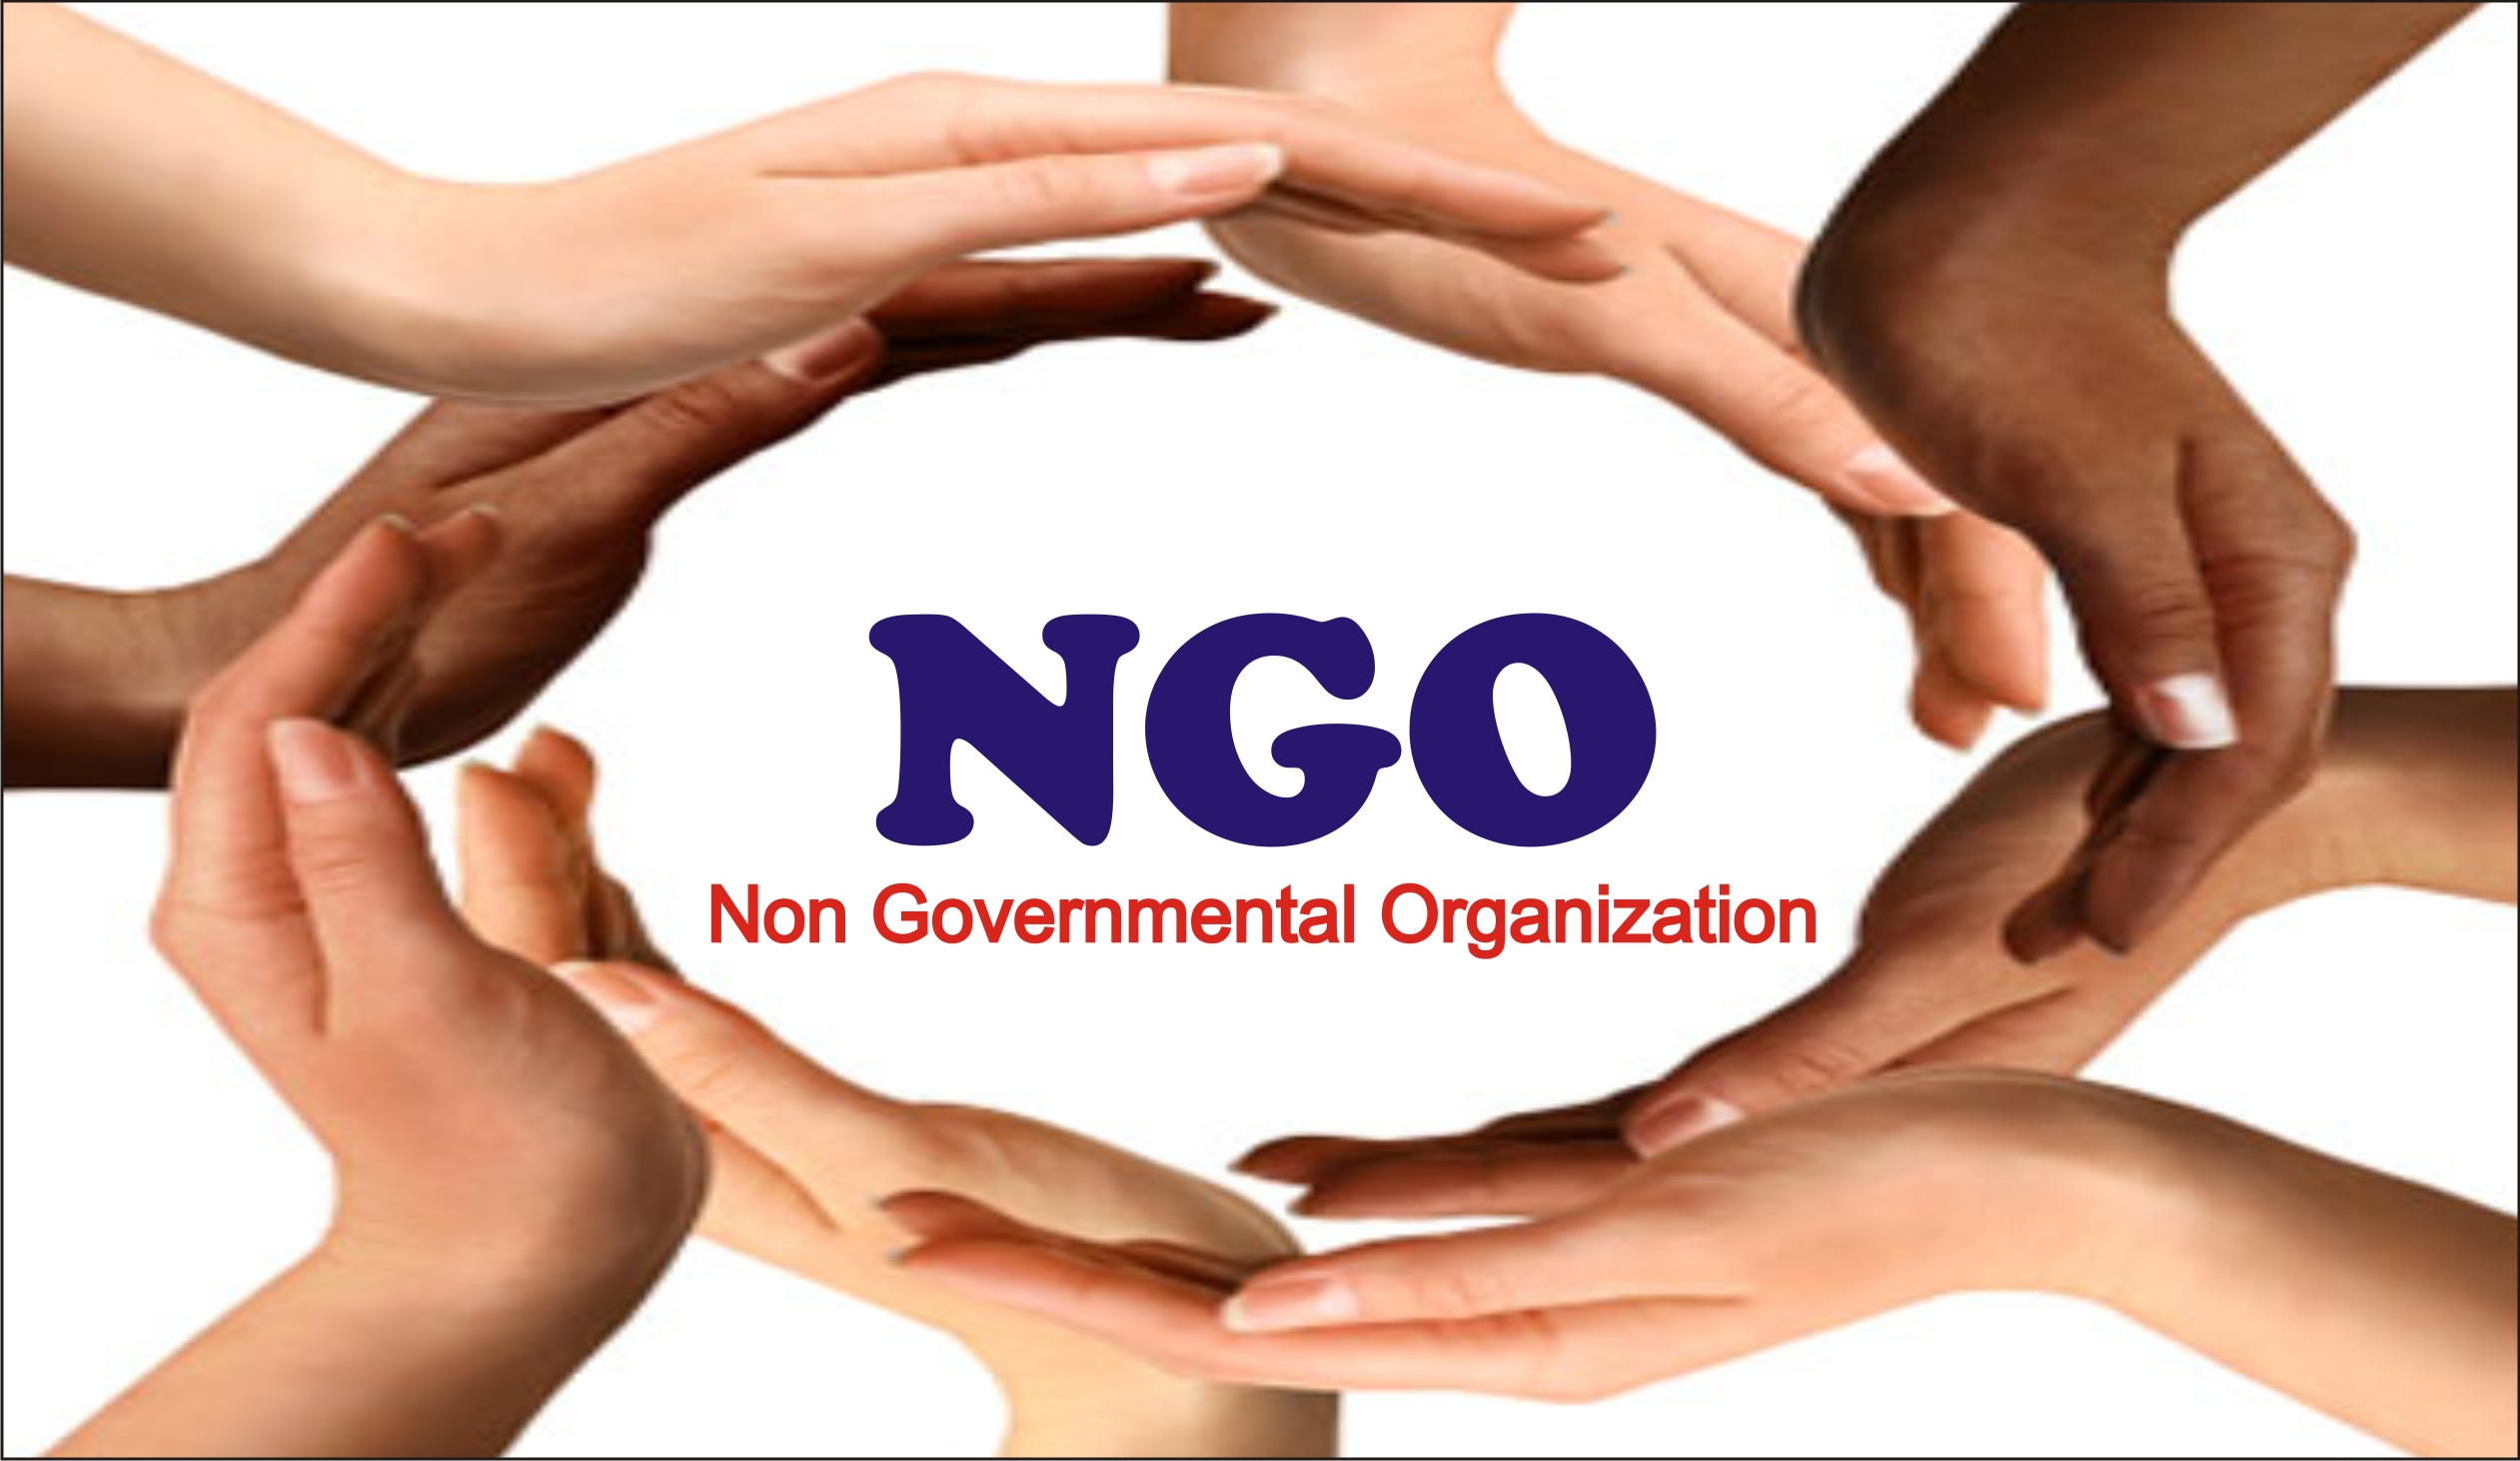 top 5 ngos of india, ngos in india, top ngo in india